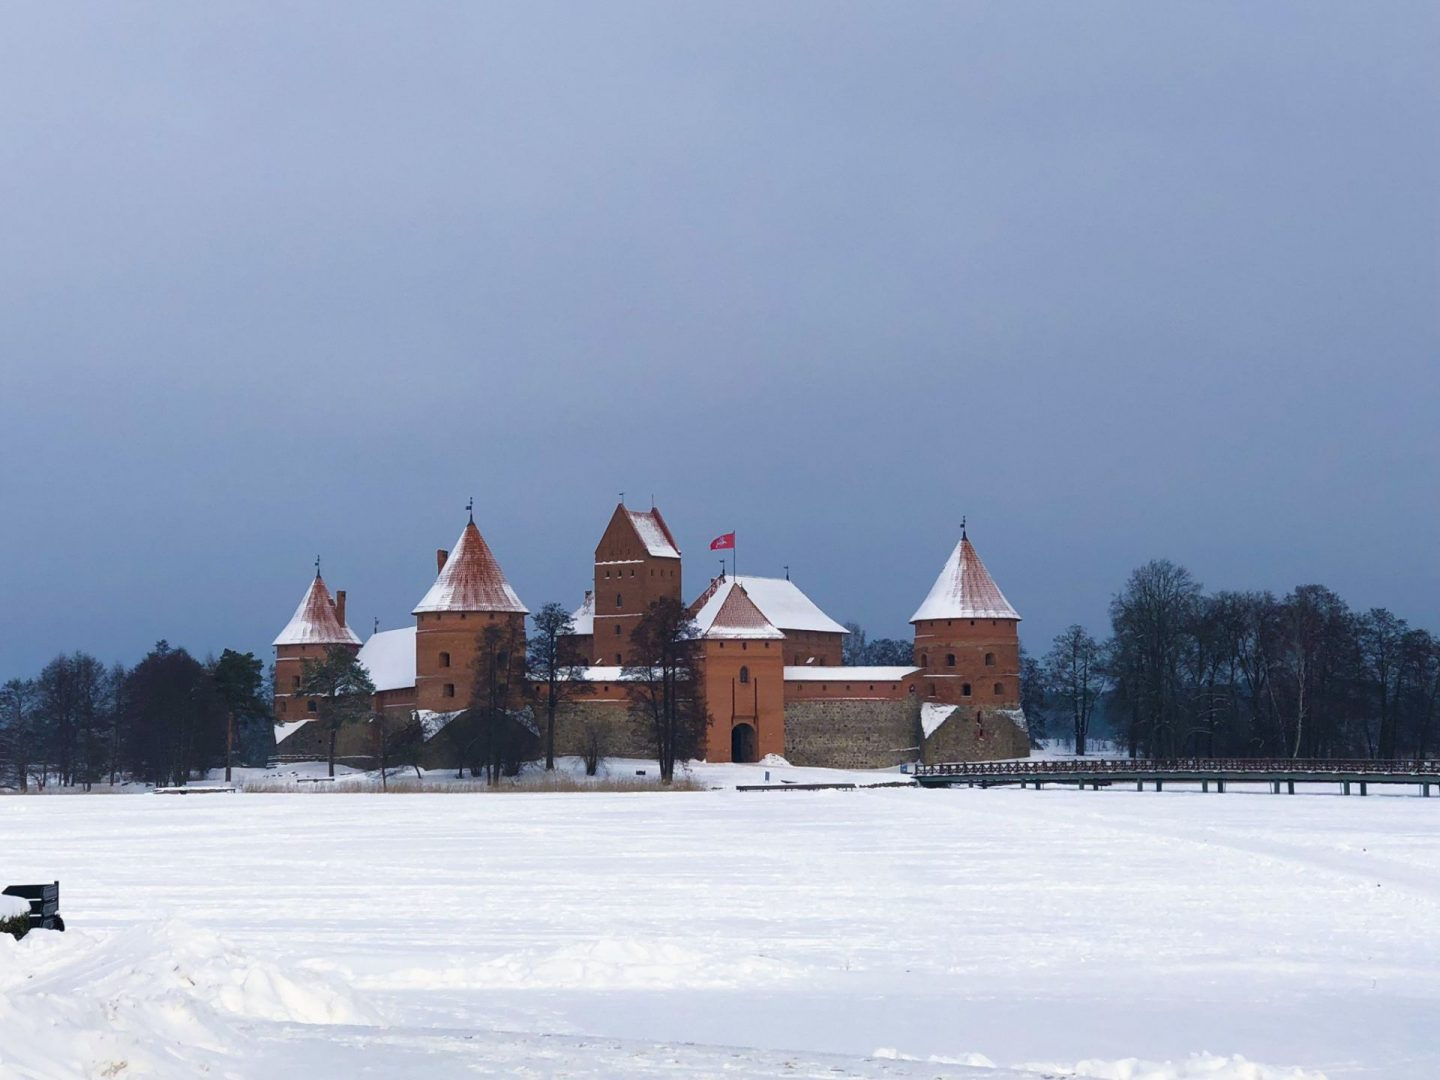 cheap european city break - Trakai castle in Trakai near Vilnius in Lithuania. The lake around the castle is frozen and covered in snow, and the sky is a moody grey